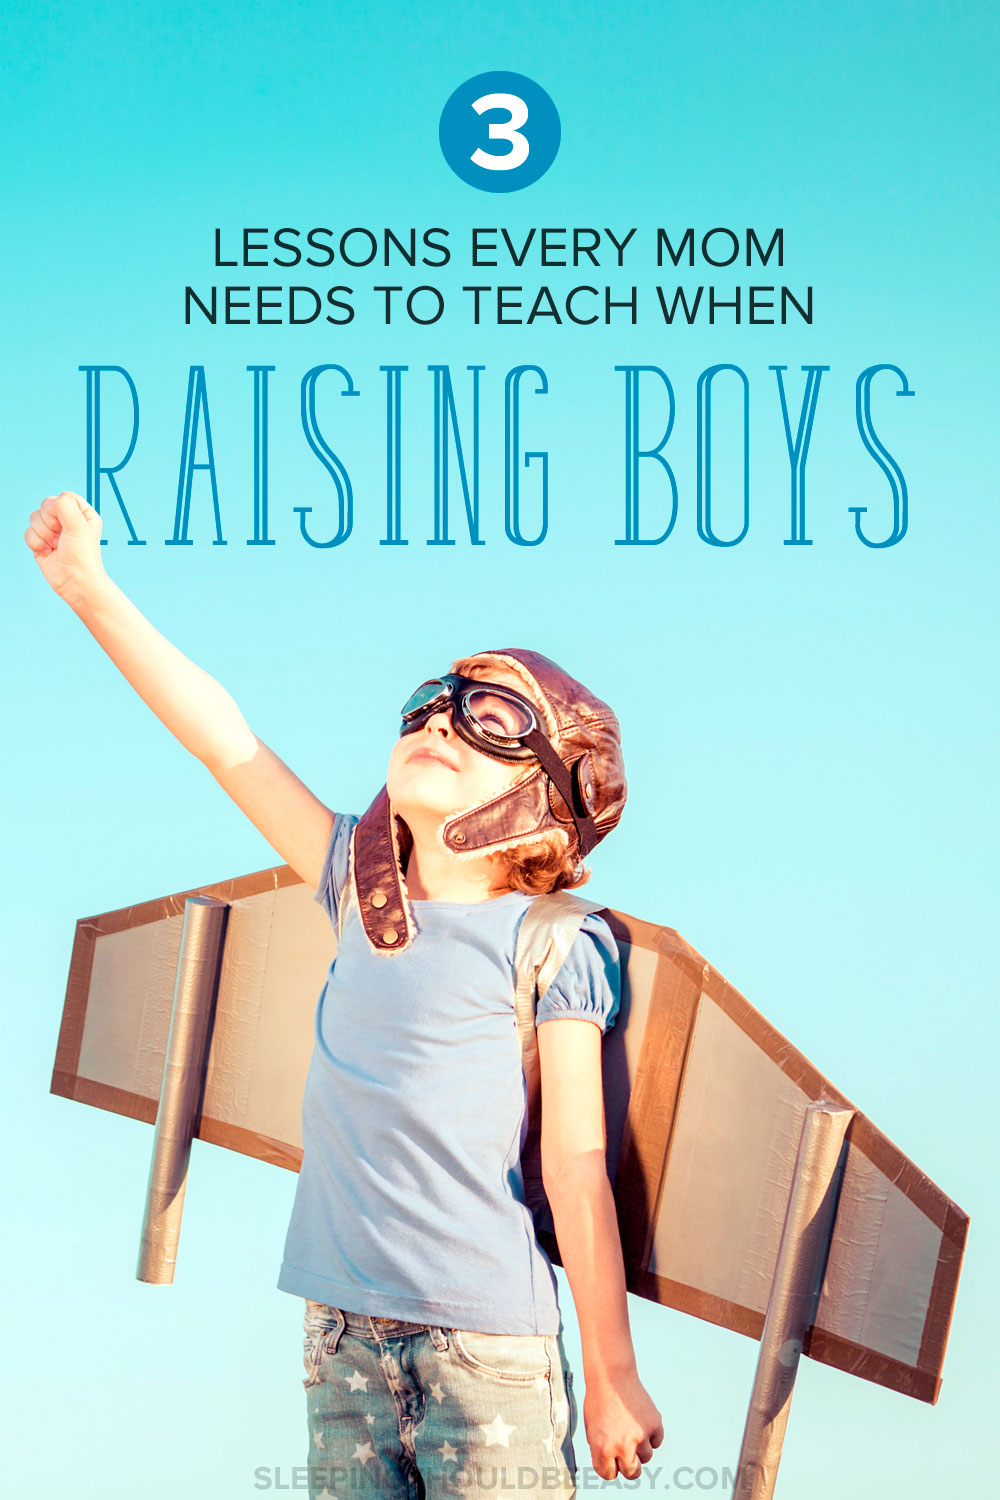 3 lessons for every mom raising boys in her family. Whether you have one boy or more, keep these tips in mind as you're raising confident boys who are kind and curious as well. A must-read if you're a mom of boys!